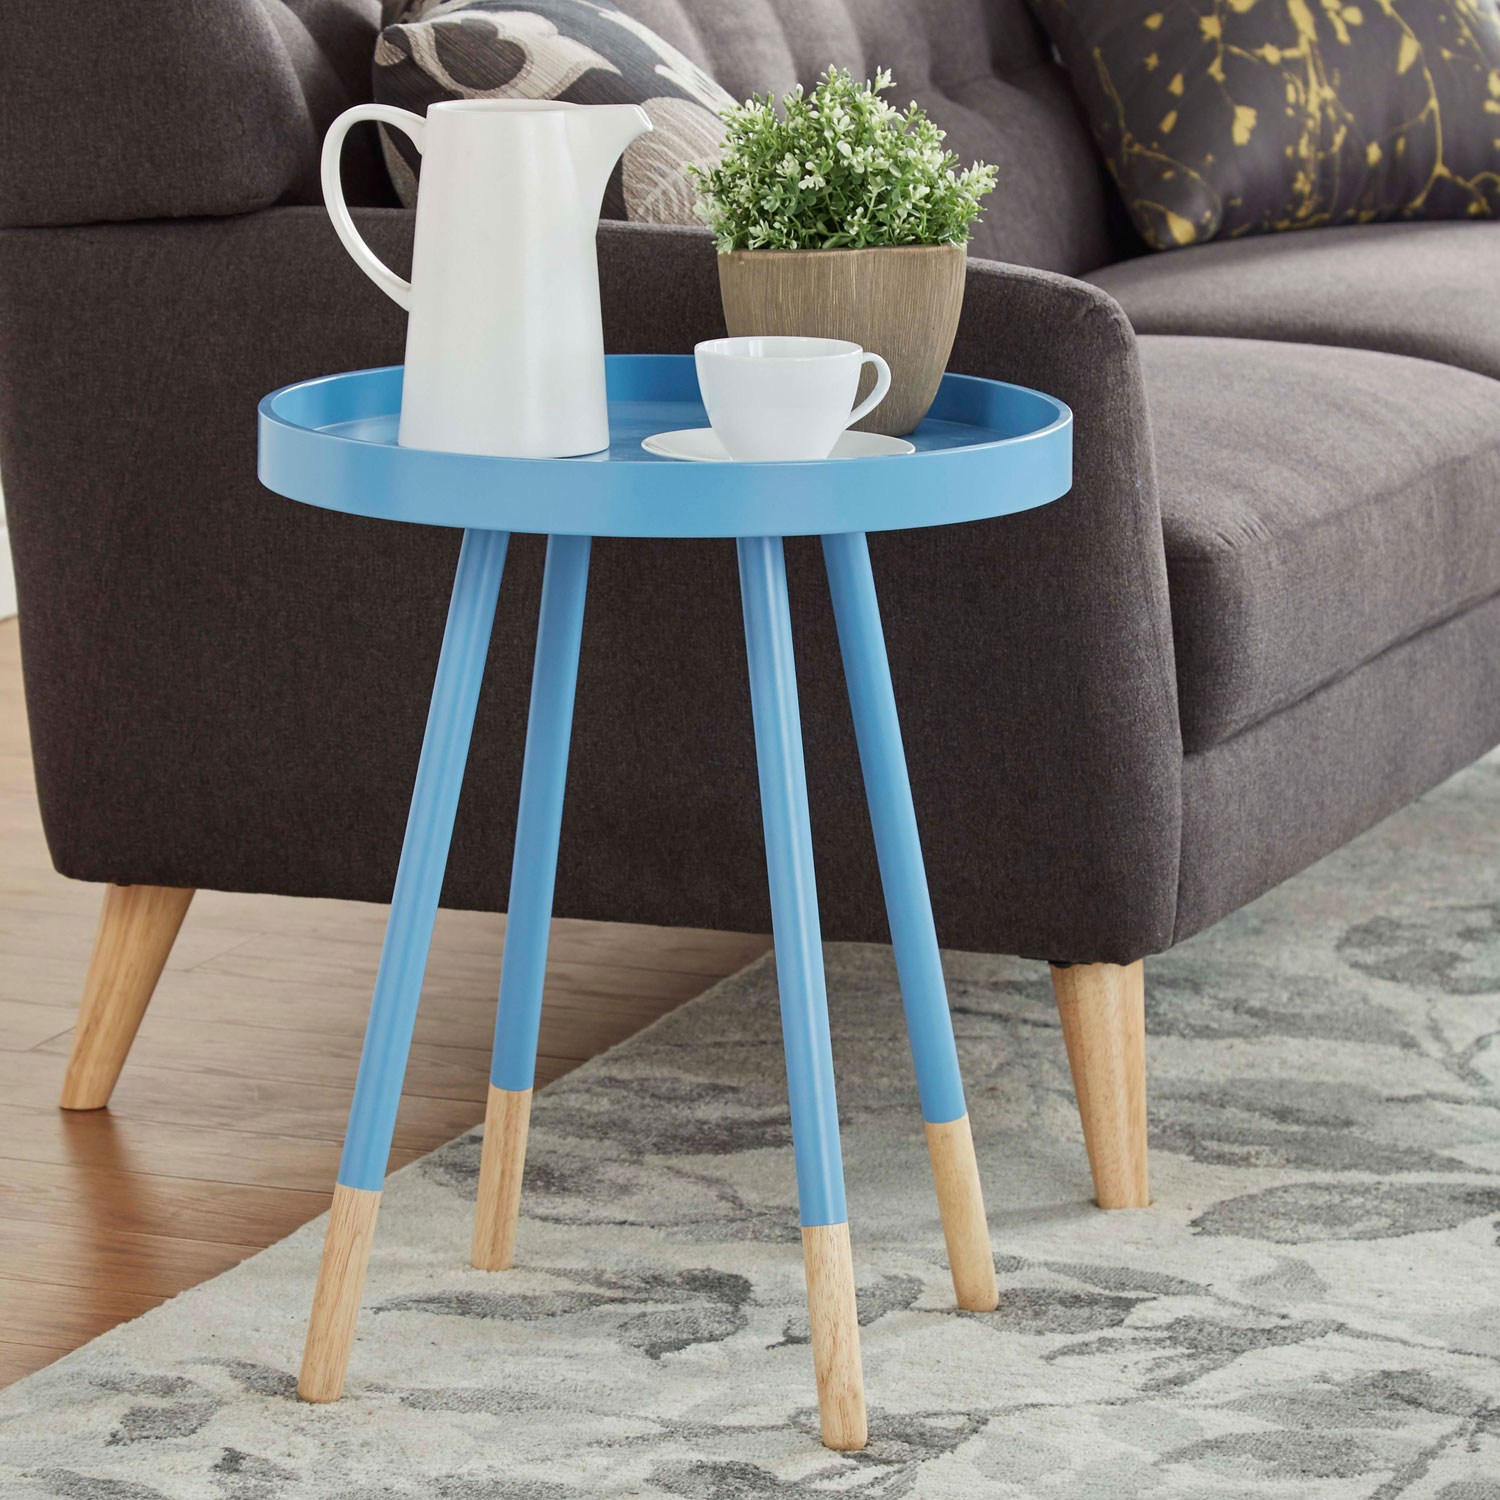 homehills joni blue mid century tray top accent table teal hover zoom tiffany floor lamp clearance and white umbrella pedestal kitchen pendant lighting small designer coffee